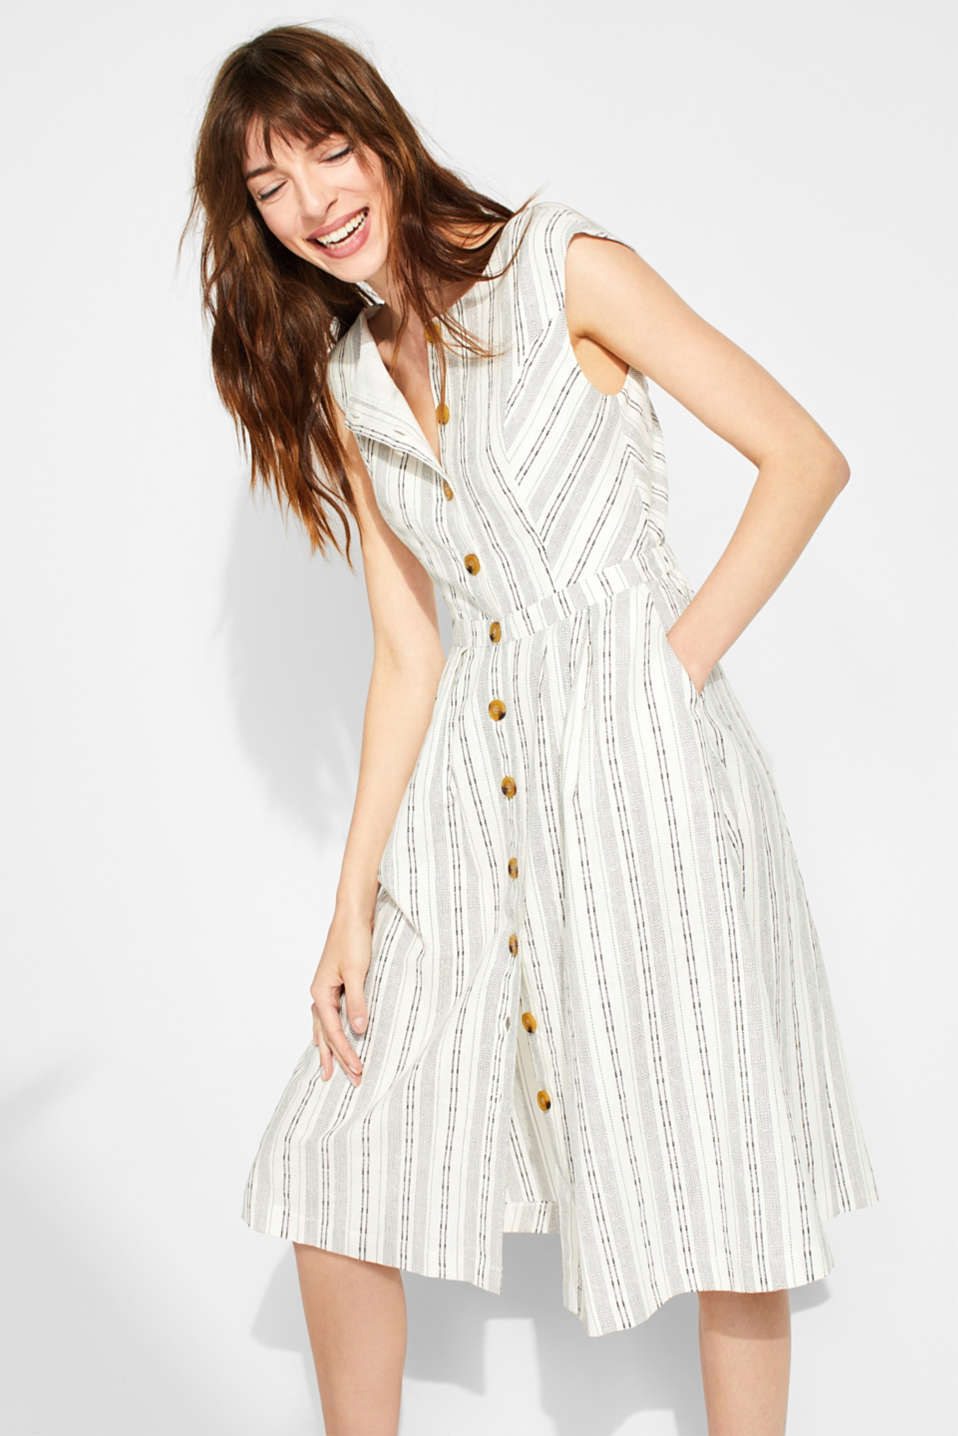 Esprit - Made of blended linen: dress with textured stripes